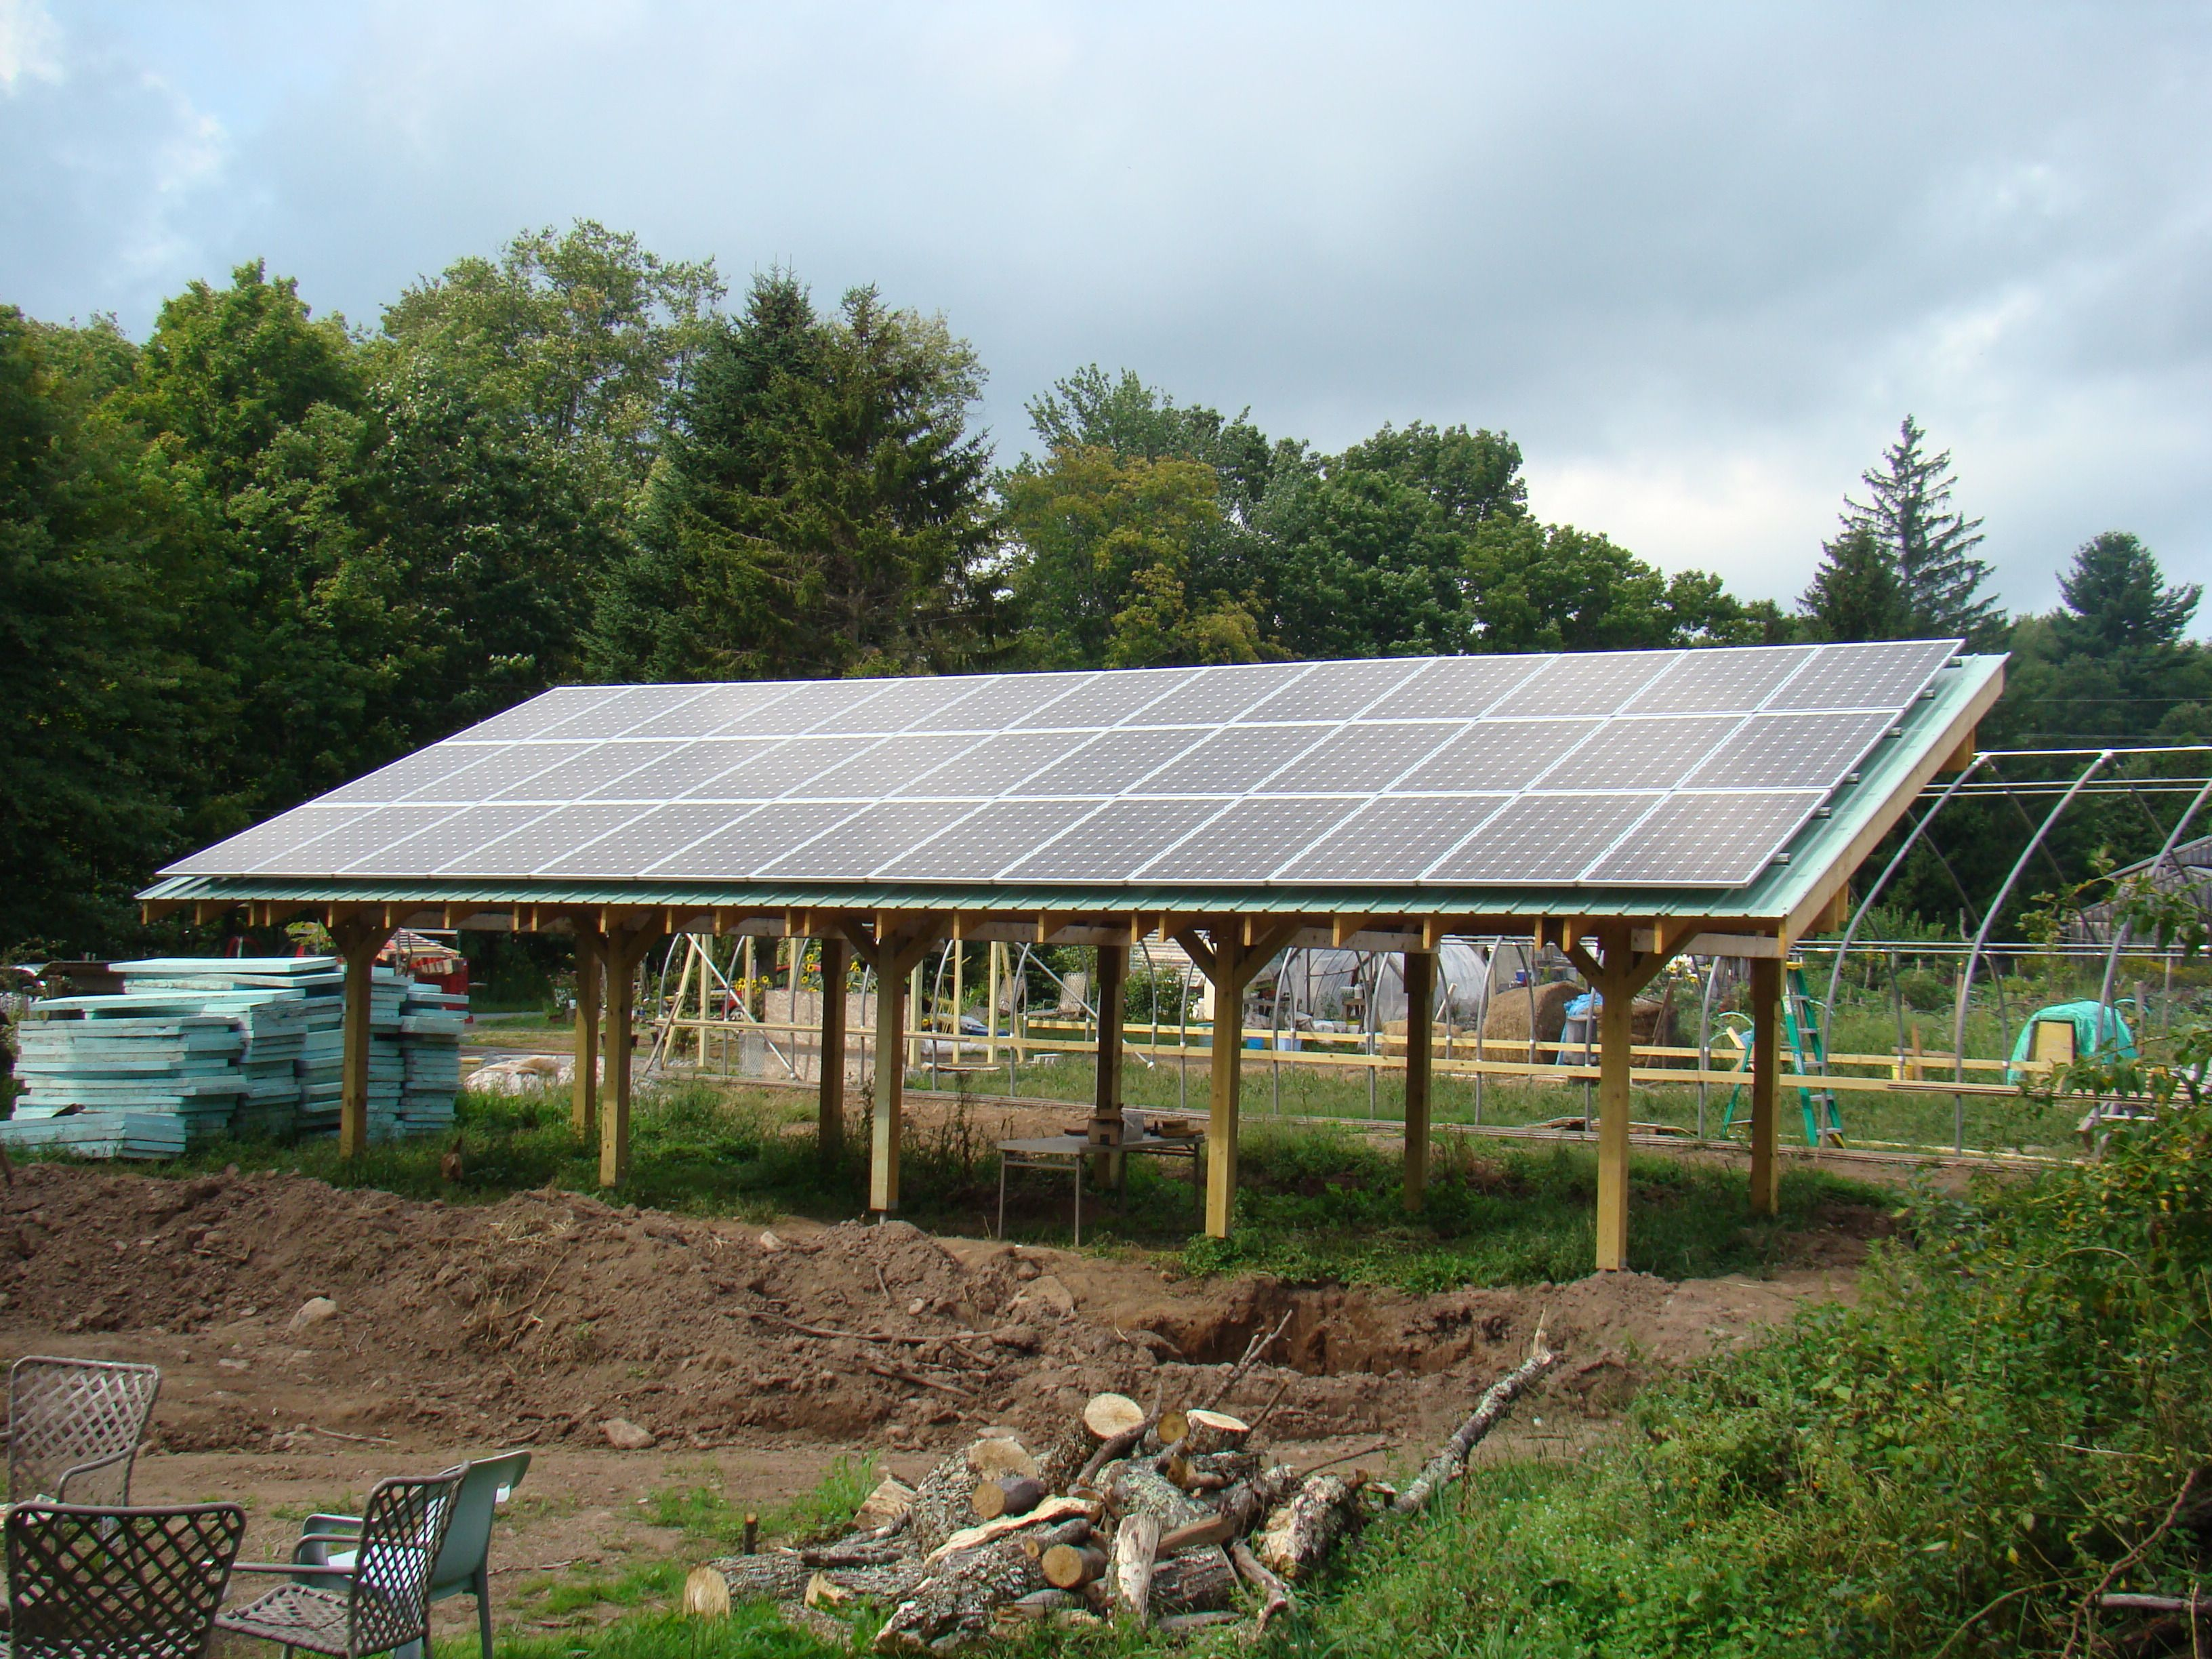 10 14kw Ground Mounted Pv System Root N Roost Farm In White Sulphur Springs Ny Built By Solar Alchemy I Free Solar Panels Solar Panels Roof Solar Panels